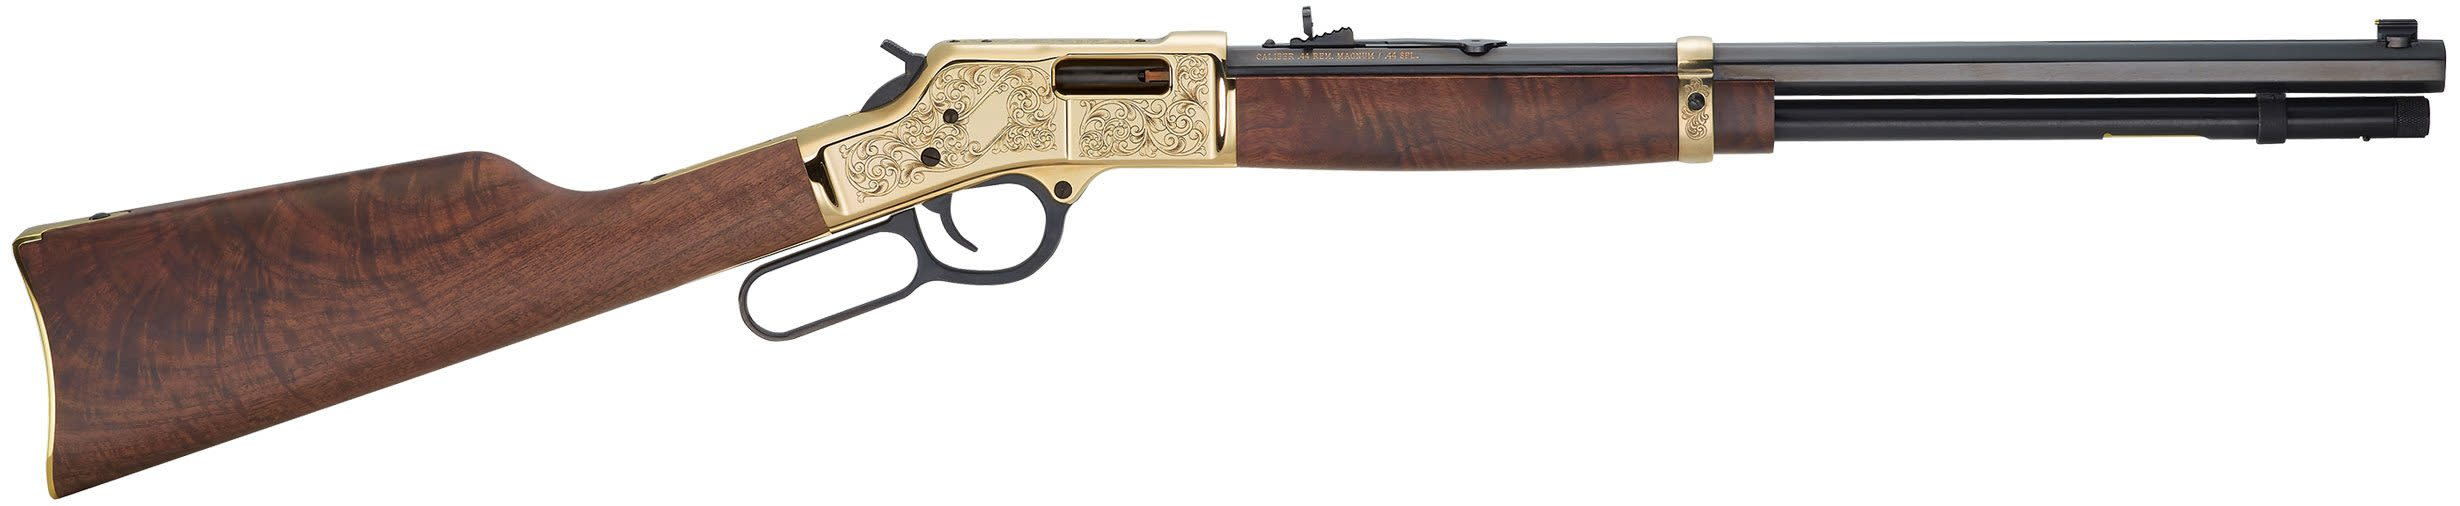 Henry Big Boy Deluxe Engraved 3rd Edition Lever-Action Rifle - 45 Colt 20